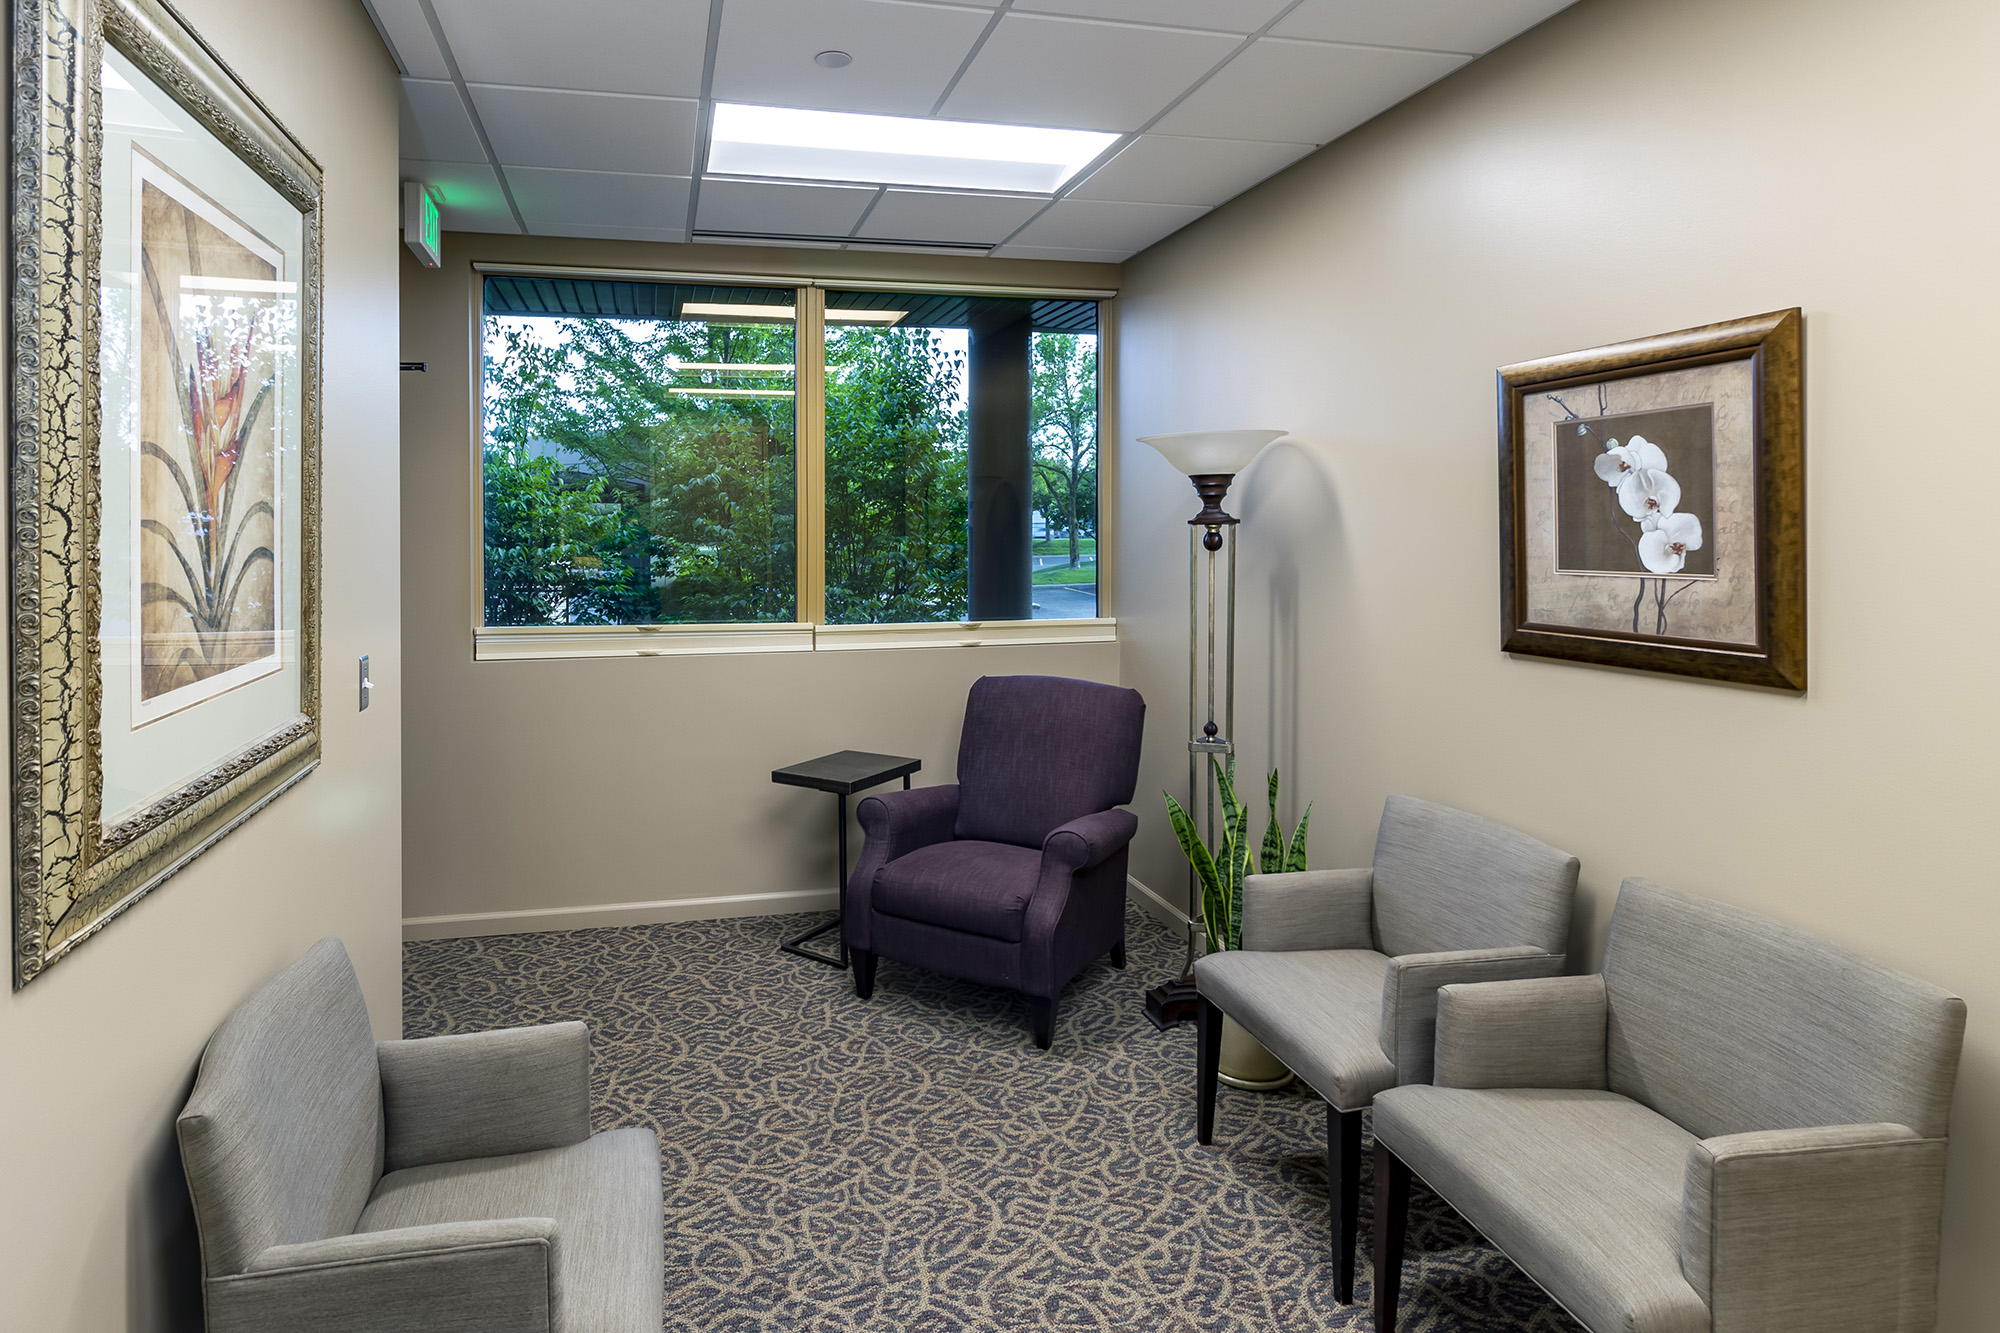 Plastic Surgery Clinic in Woodbury | Sever Construction ...